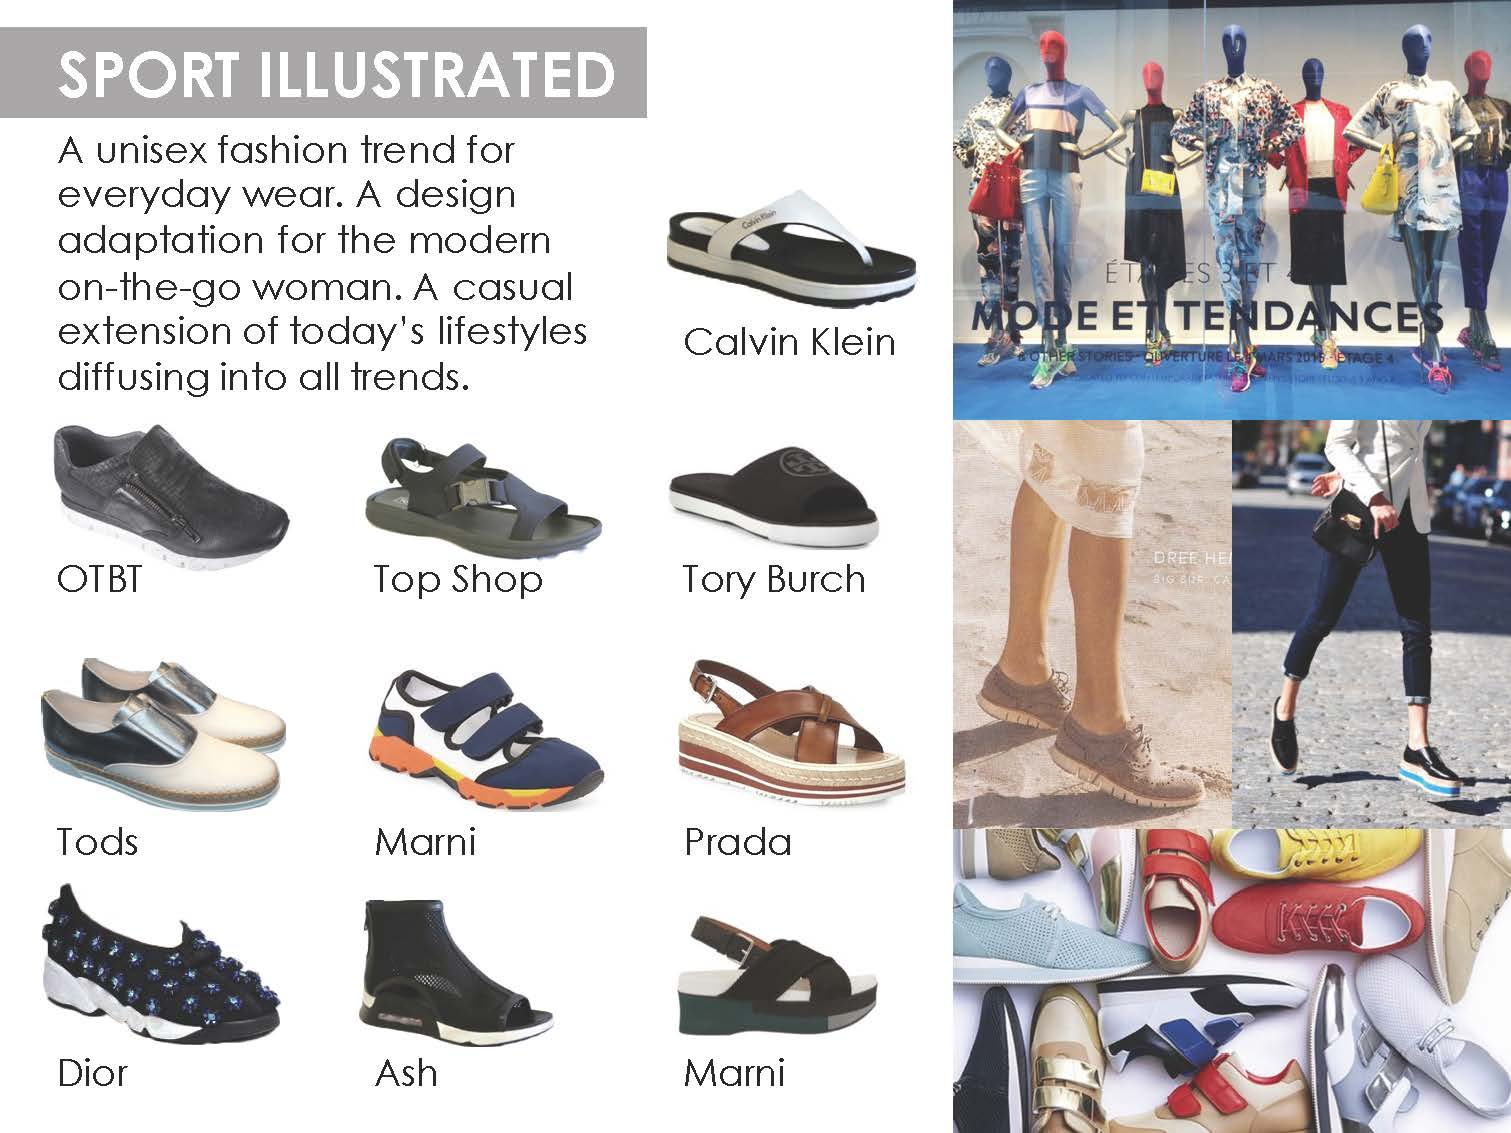 SS 2016 Trend Report_Page_03.jpg